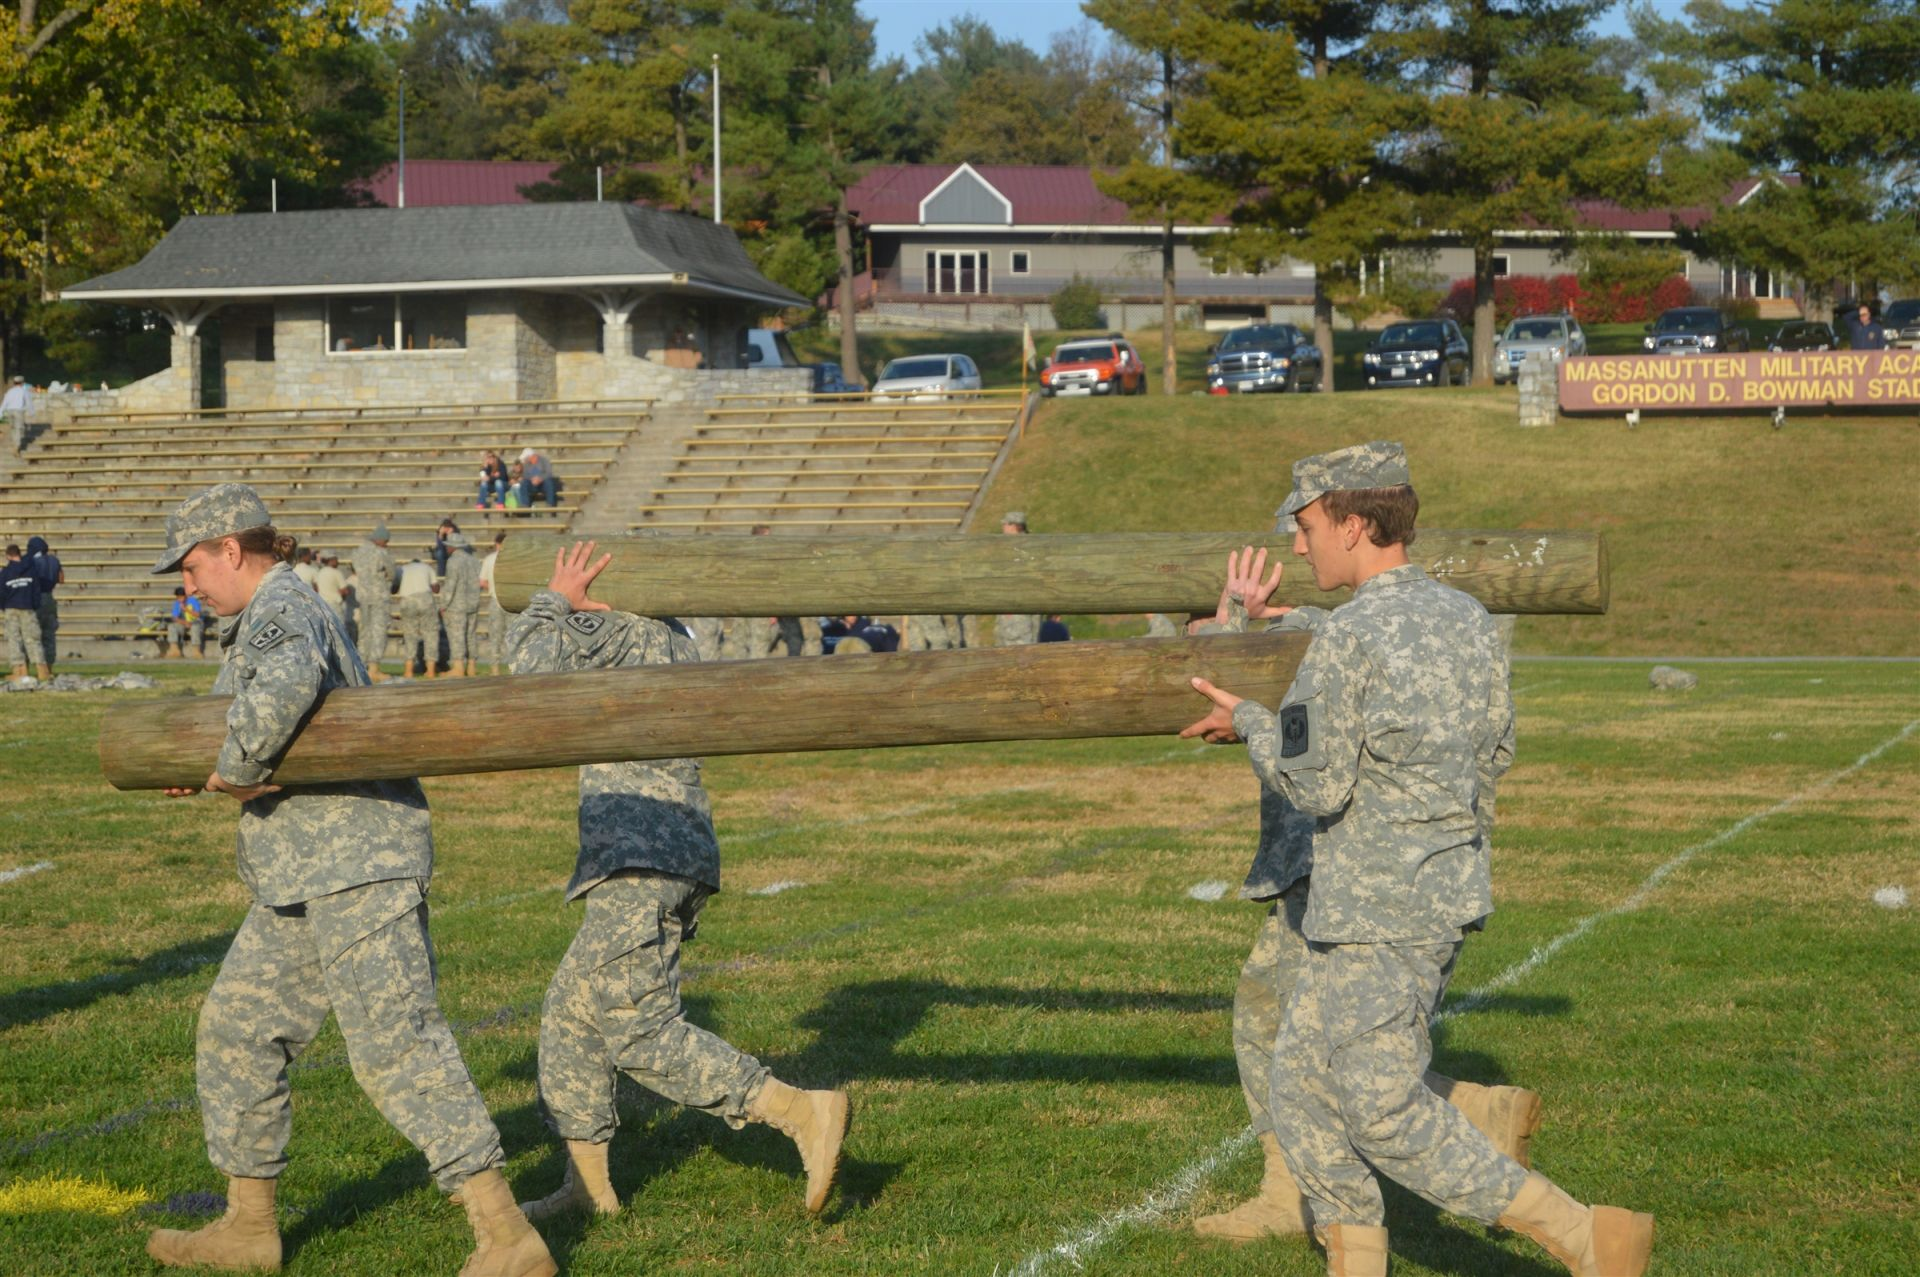 The Cadets accomplish their tasks through leadership and teamwork.